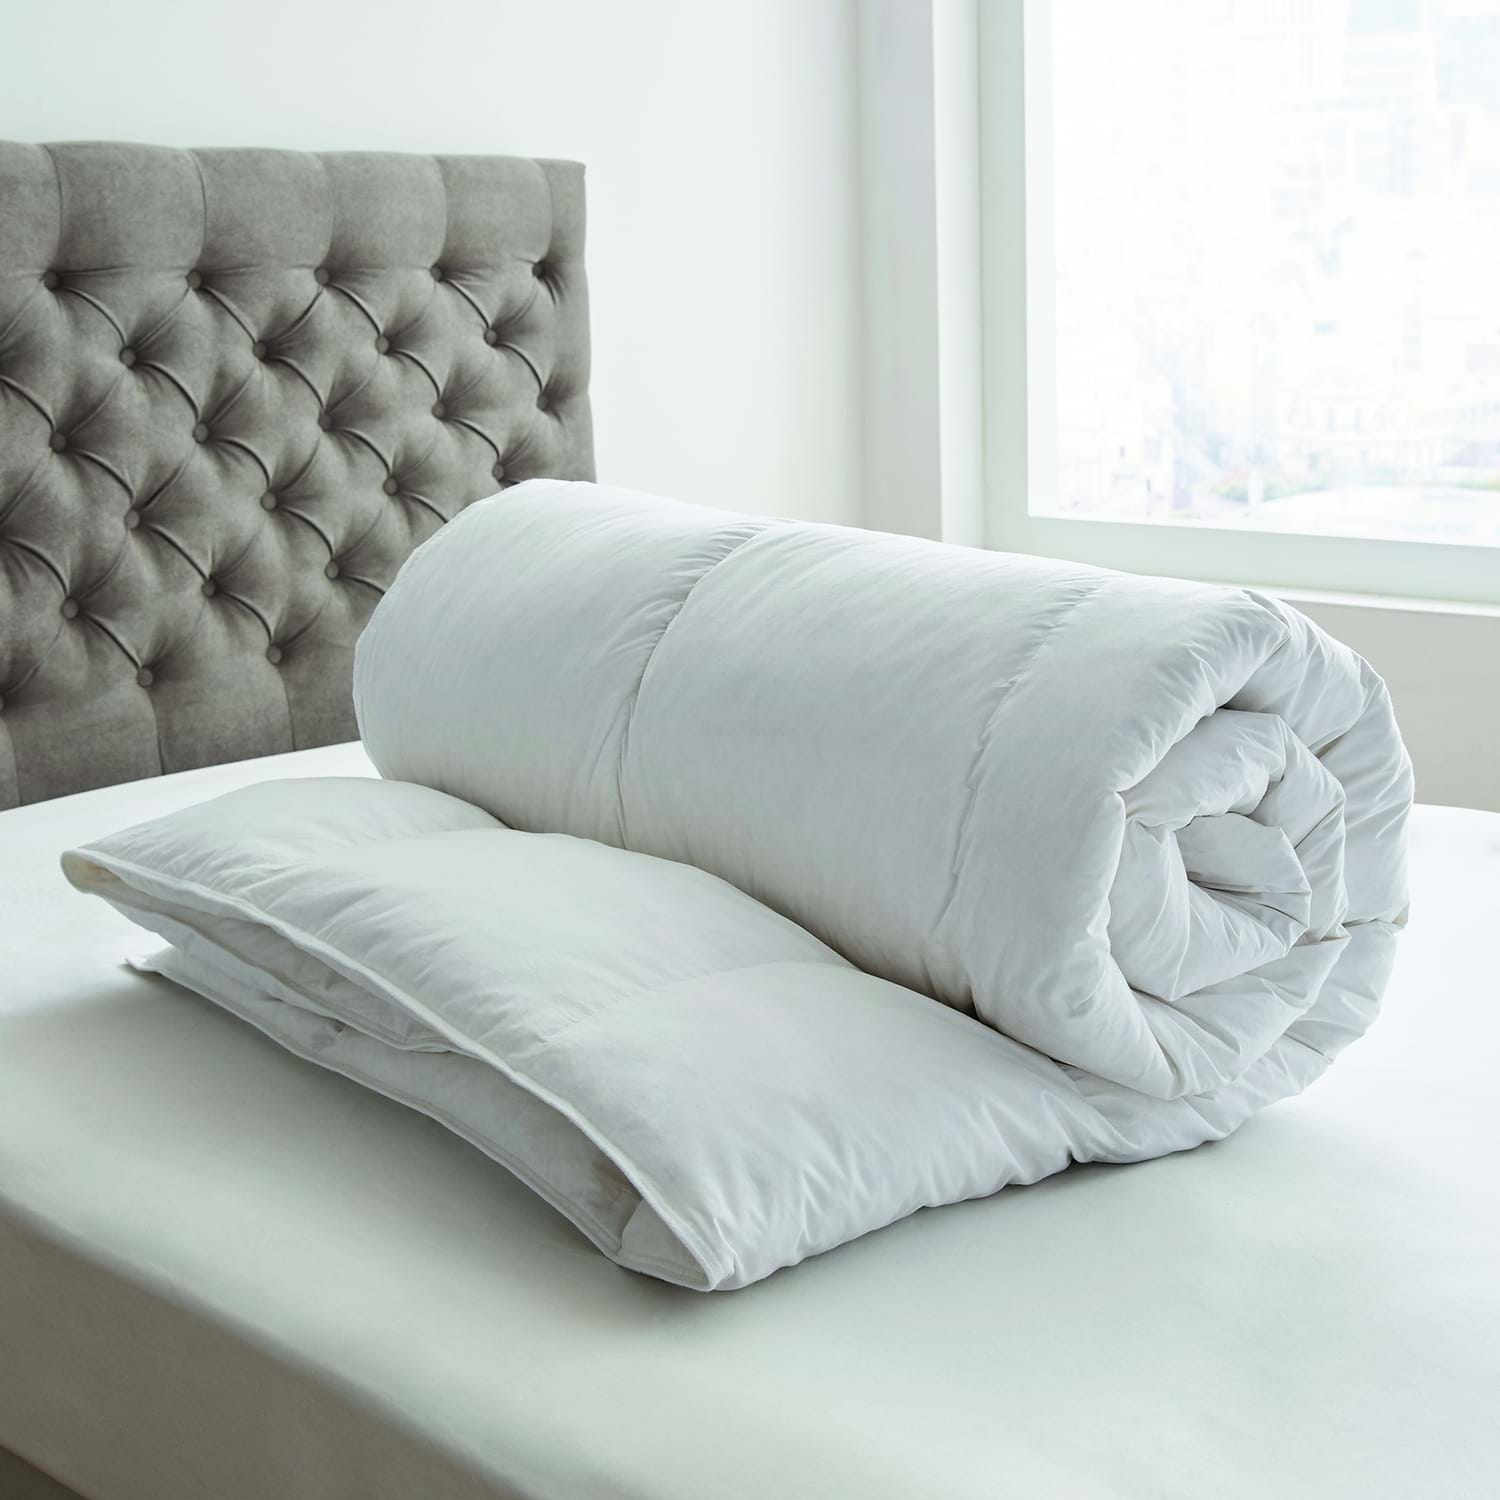 Image of Bedeck Goose Feather and Down Duvet, 13.5 Tog, Double, White